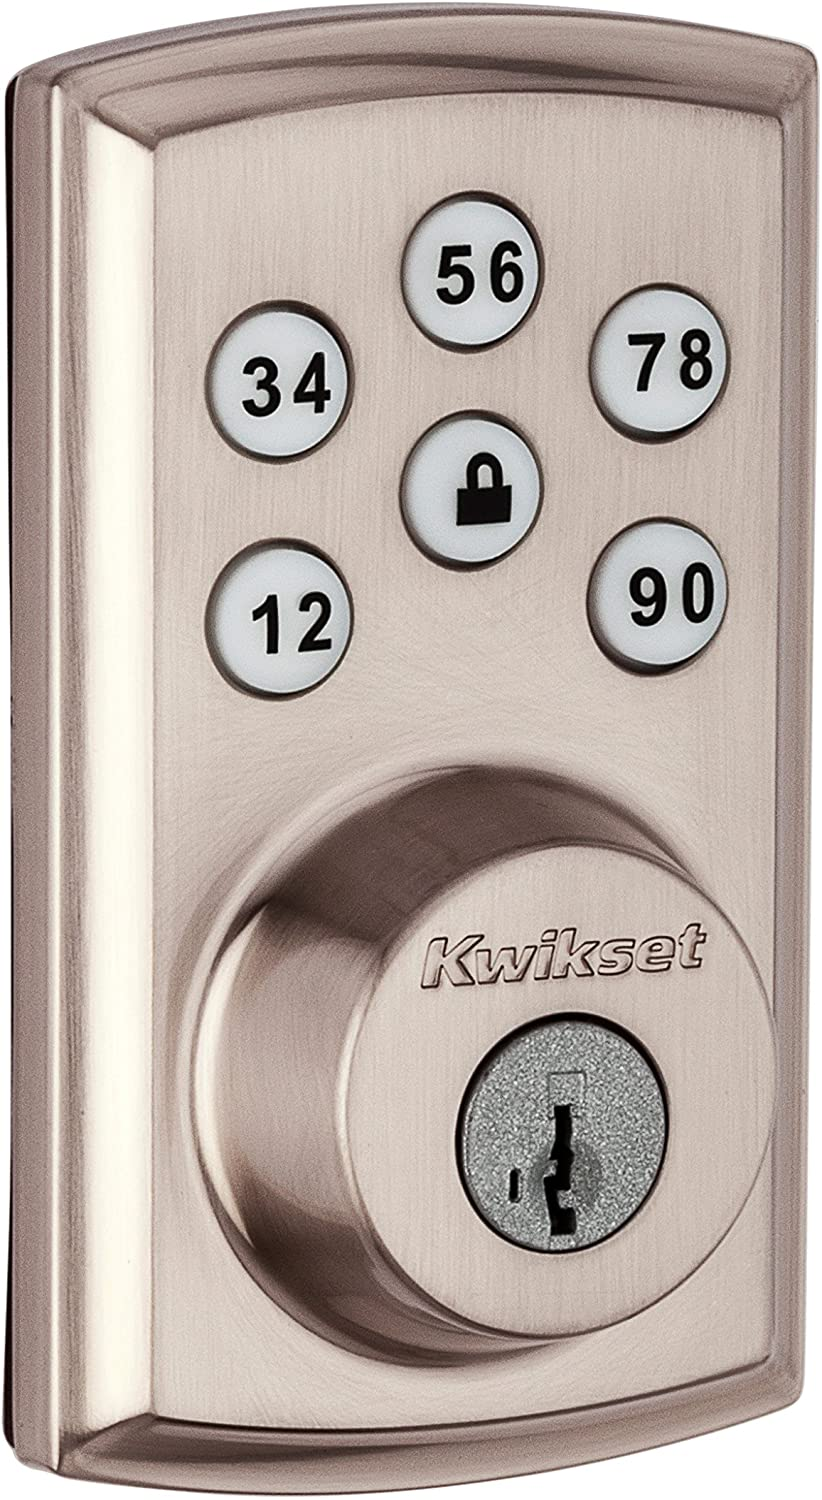 Best smart Locks that work with Ring